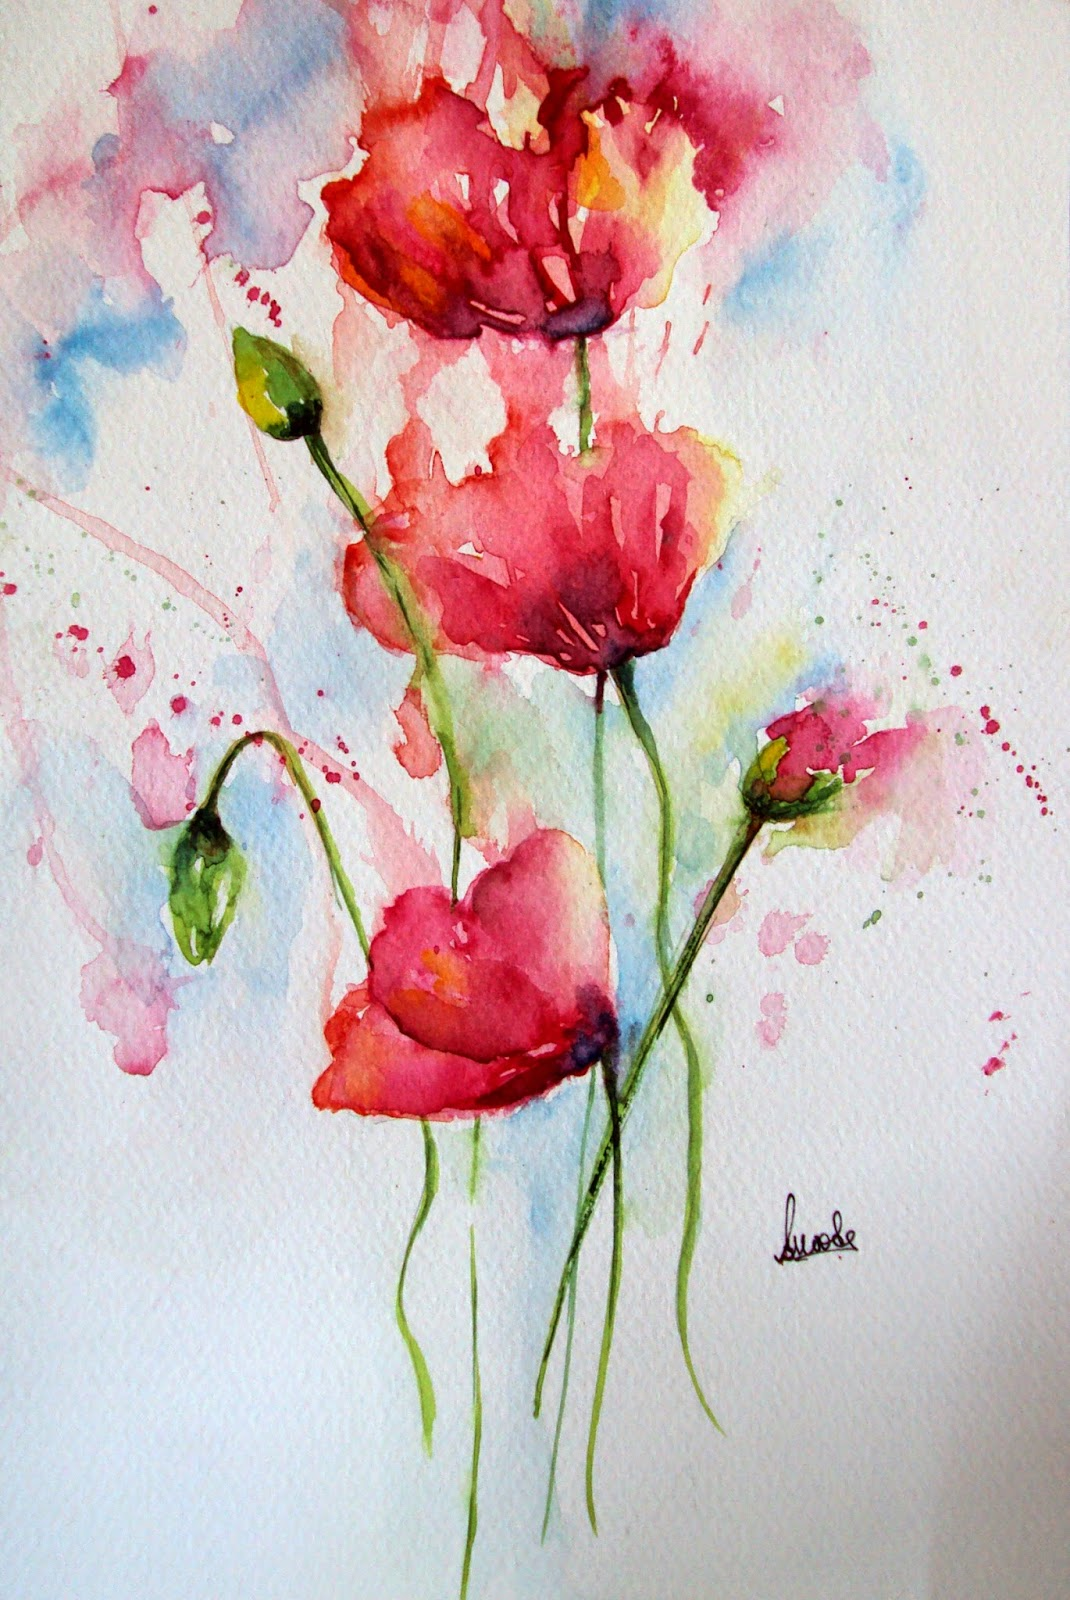 Poppy, poppies, flowers, floral, watercolor, watercolour, painting, garden, nature, handmade, abstract, art, splash, colorful